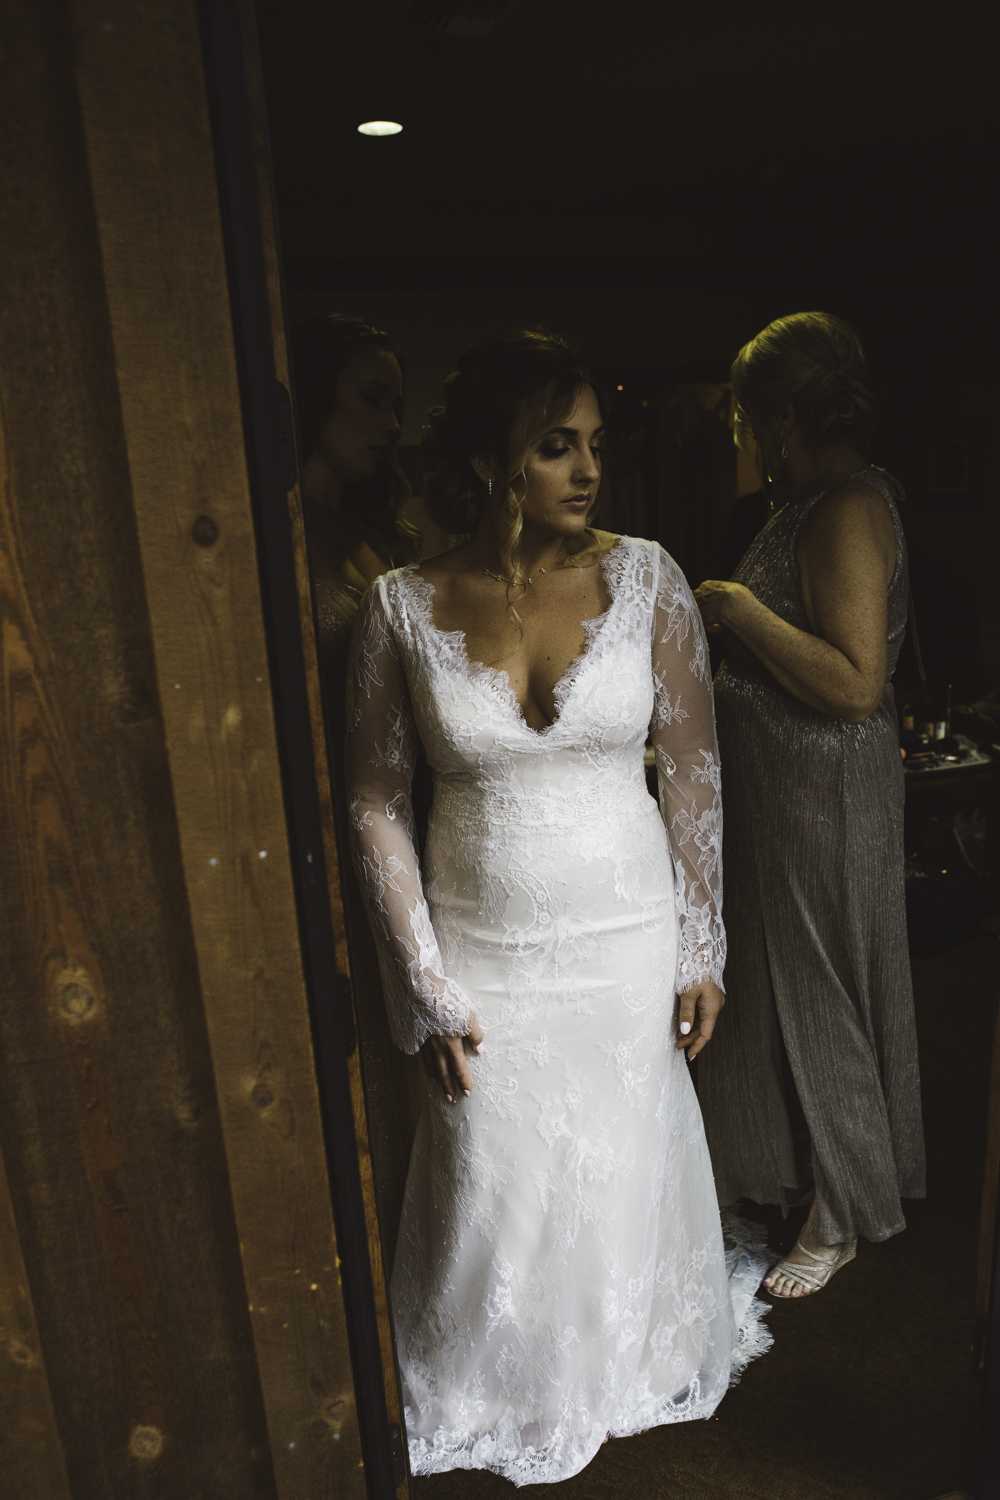 sarah-danielle-photography-intimate-portland-wedding-10.jpg